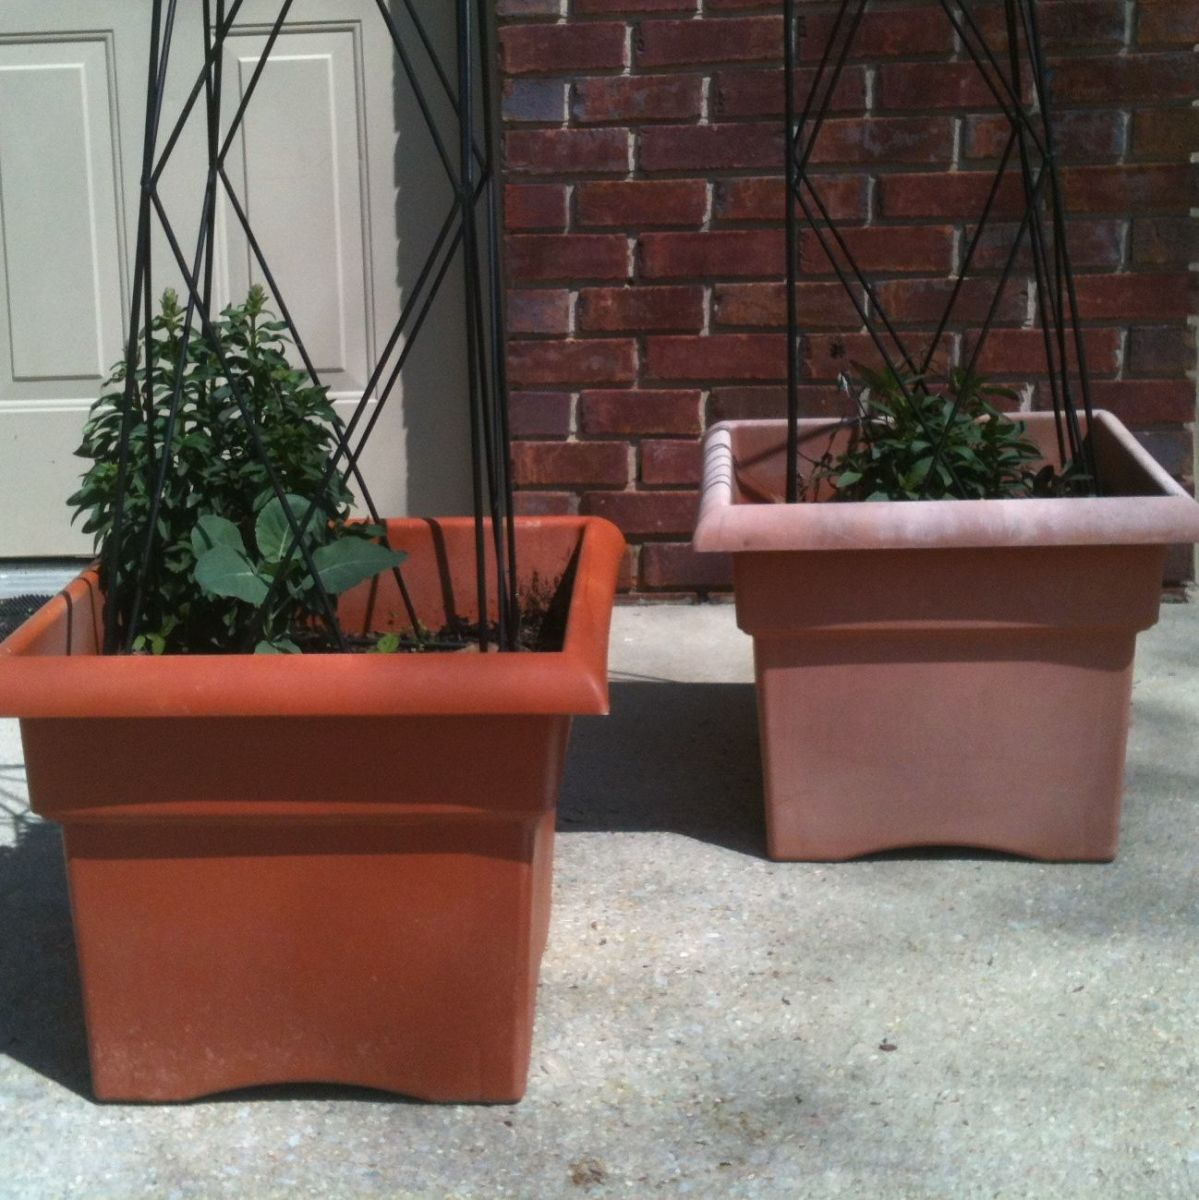 The before (right) and after (left) of my painting project for these old, faded plastic planters. Spray paint to the rescue!